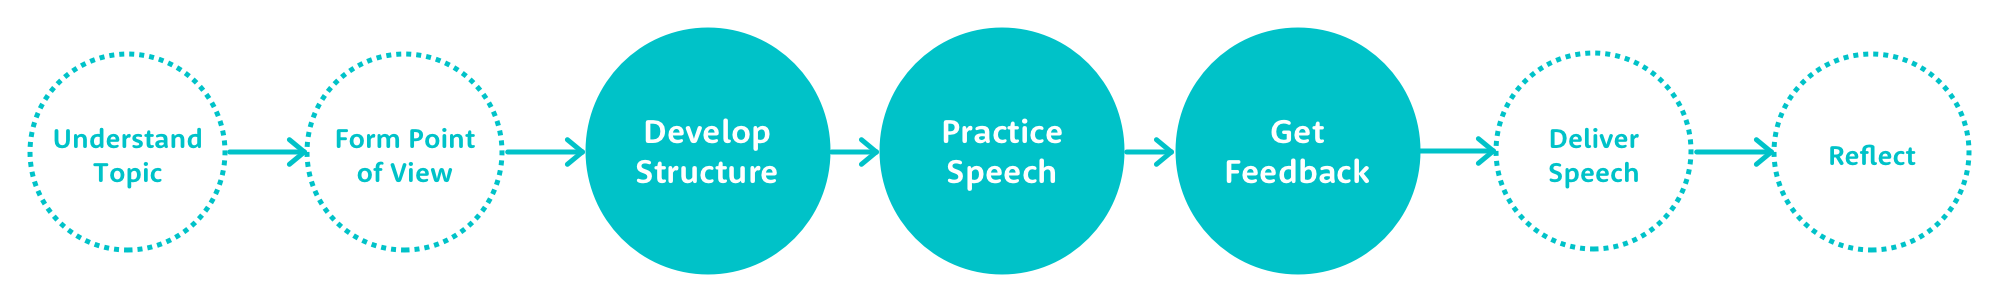 podium_Public_Speaking_Framework_Focus.png